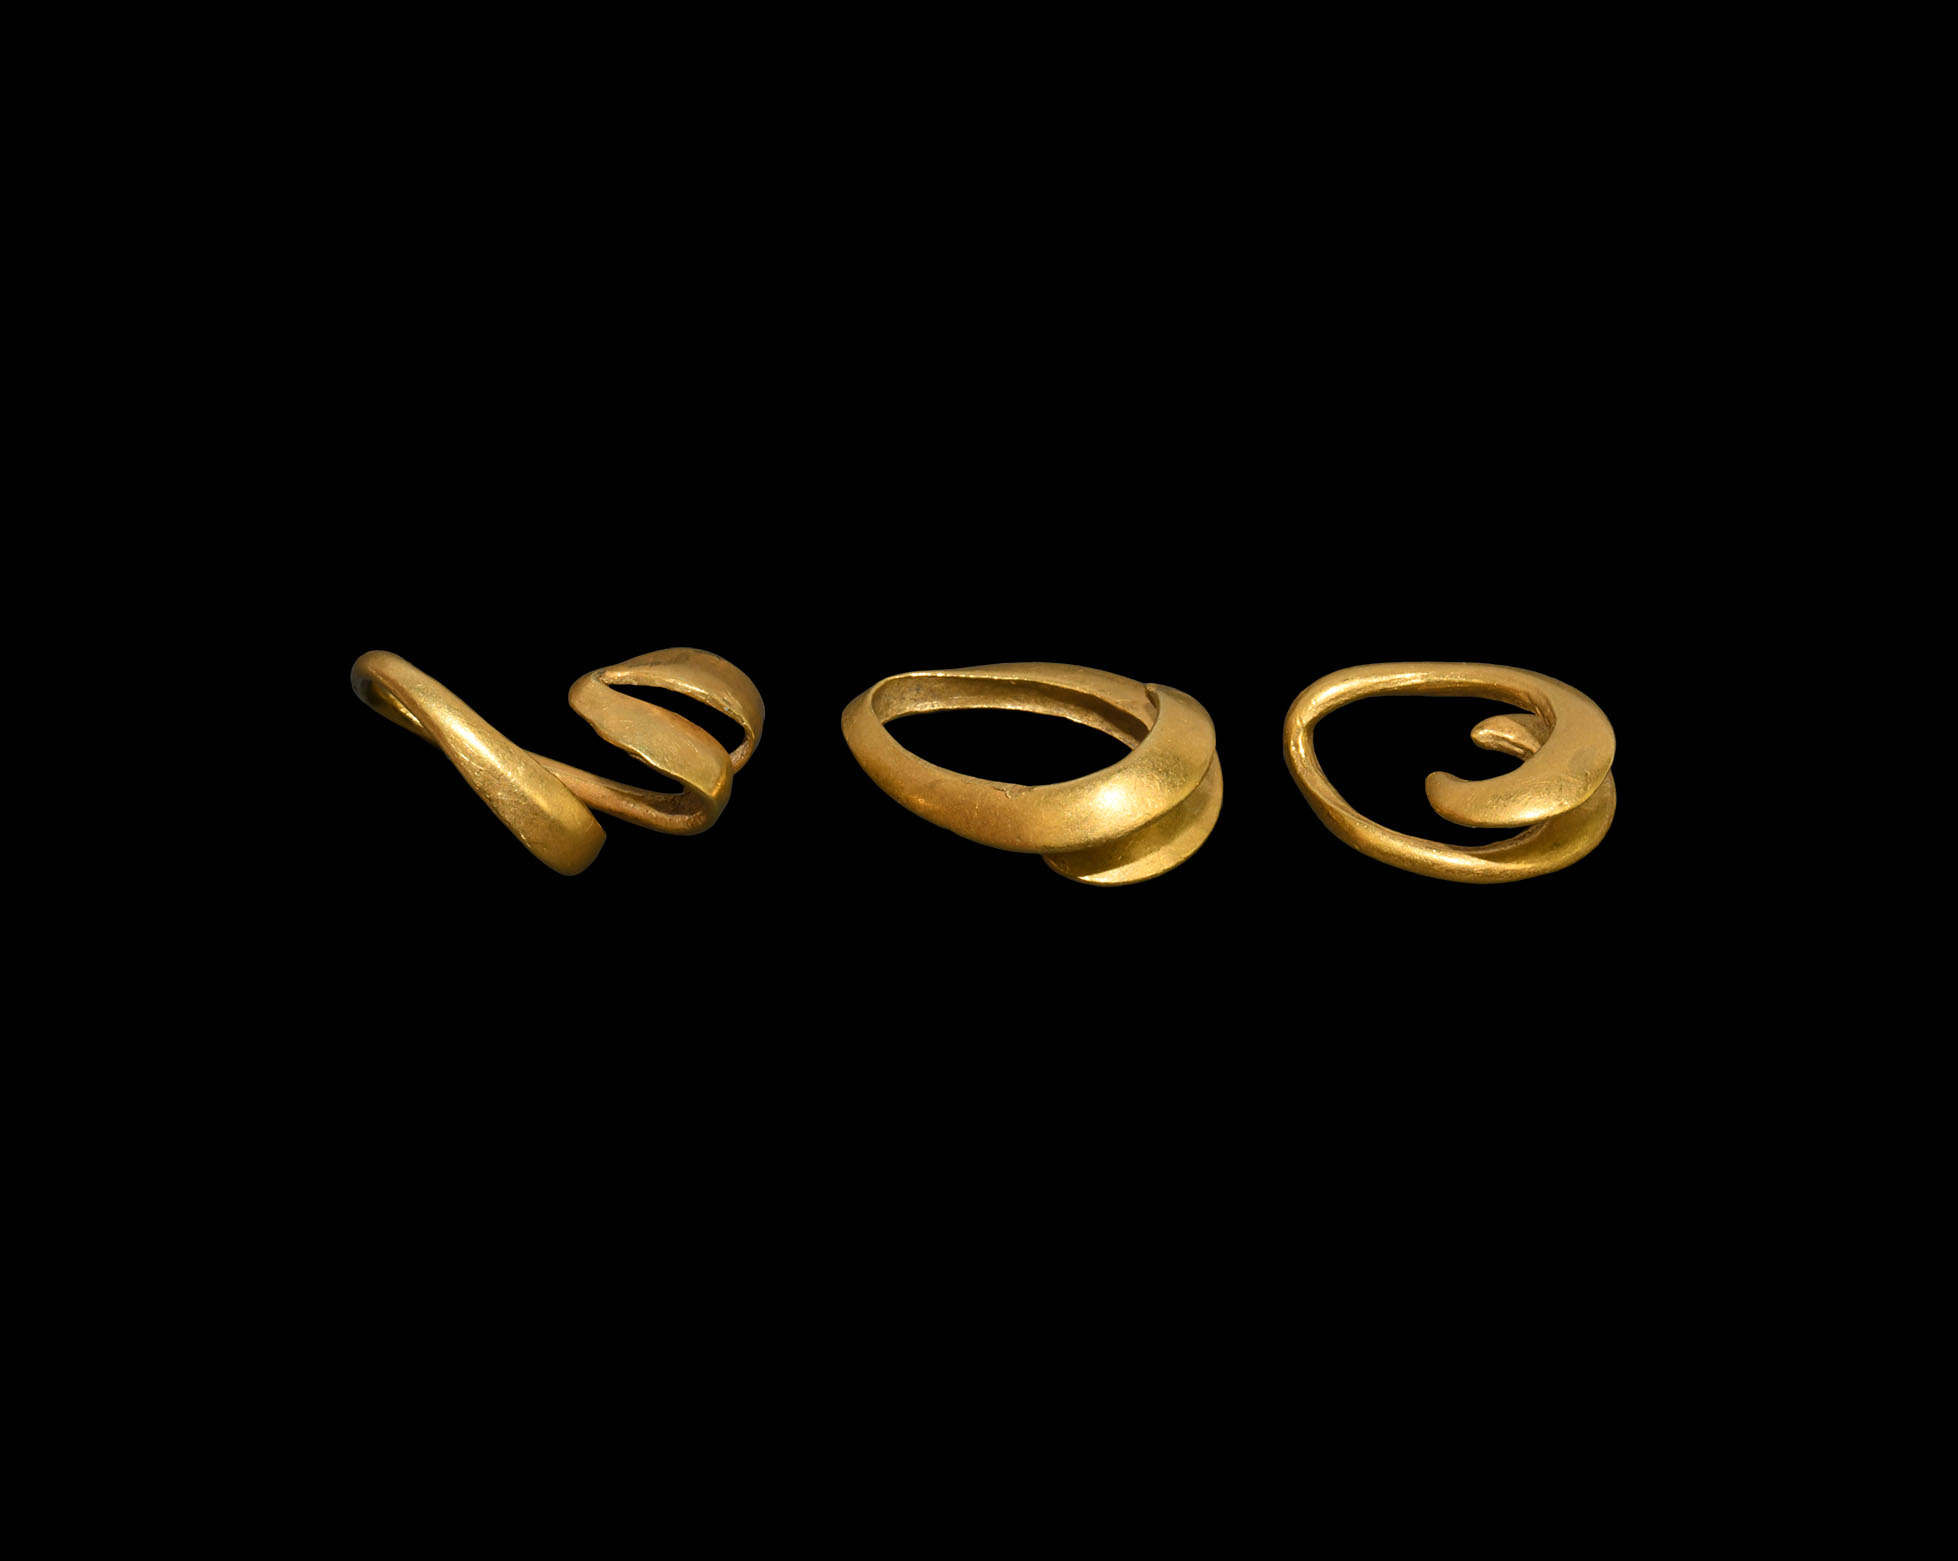 Bronze Age Gold Hair Ring Collection